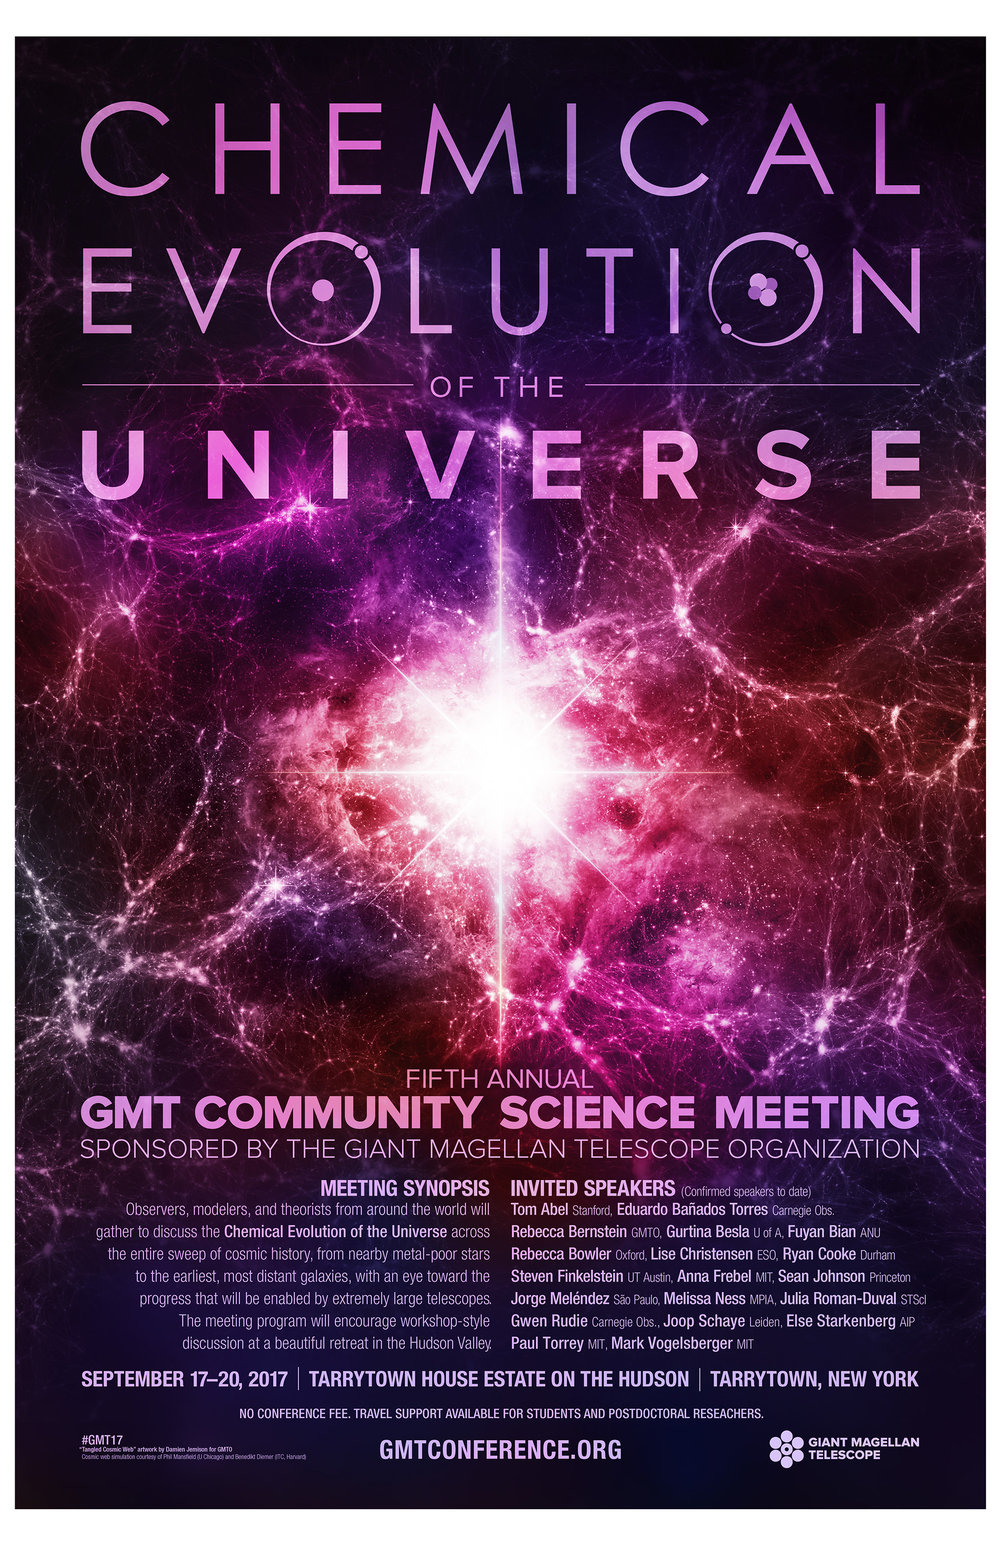 Fifth Annual GMT Community Science Meeting Promotional Poster.  Download the PDF